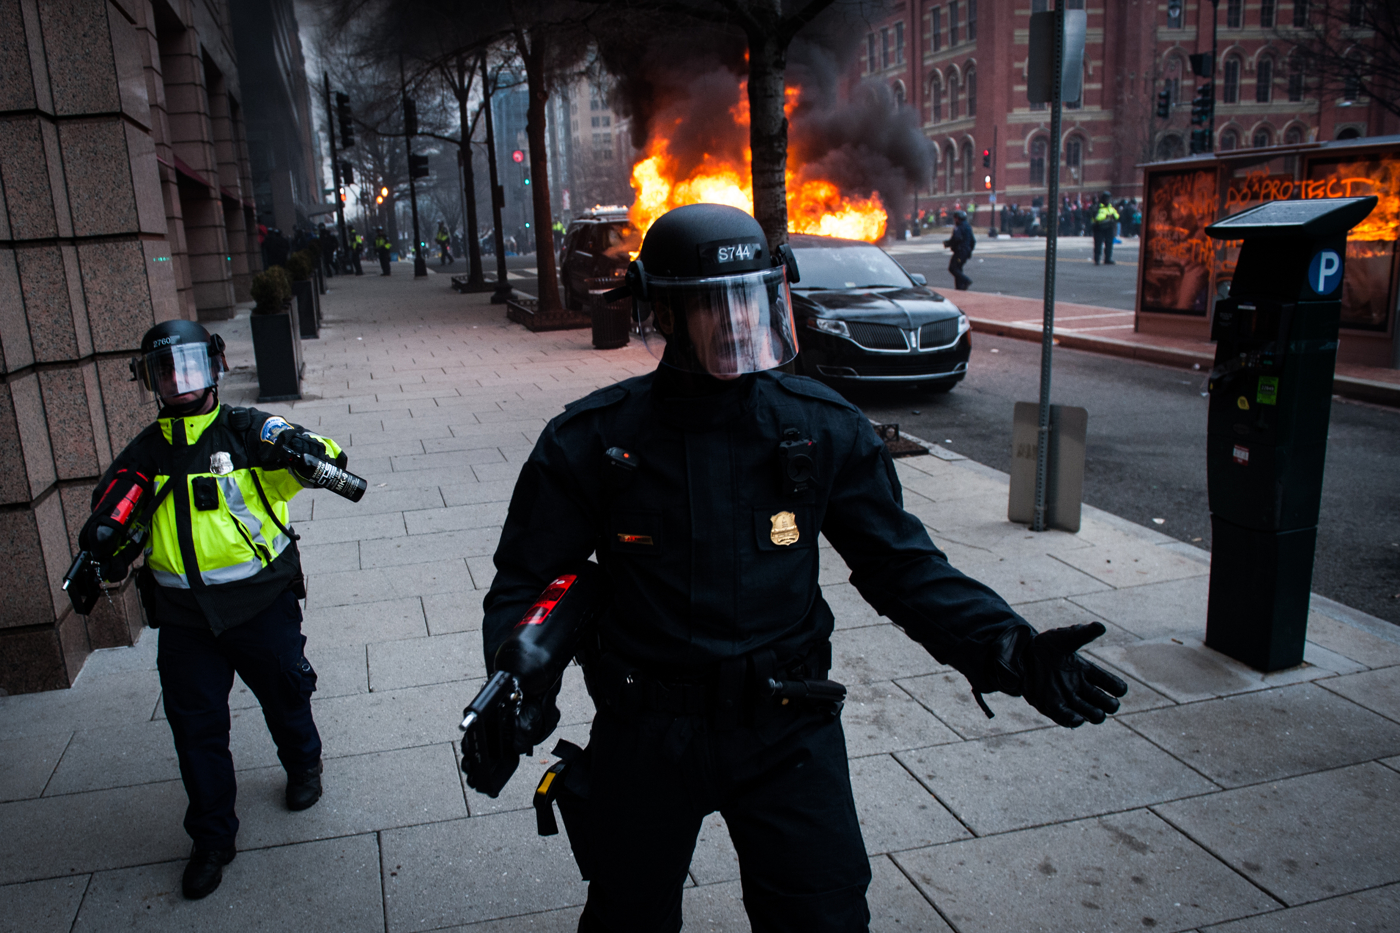 D.C Metropolitan Police advance on the crowd after a group set fire to a limousine during a protest of Donald Trump's inauguration as the 45th President of the United States in Washington, D.C., on January 20, 2017. Credit: Mark Kauzlarich for CNN